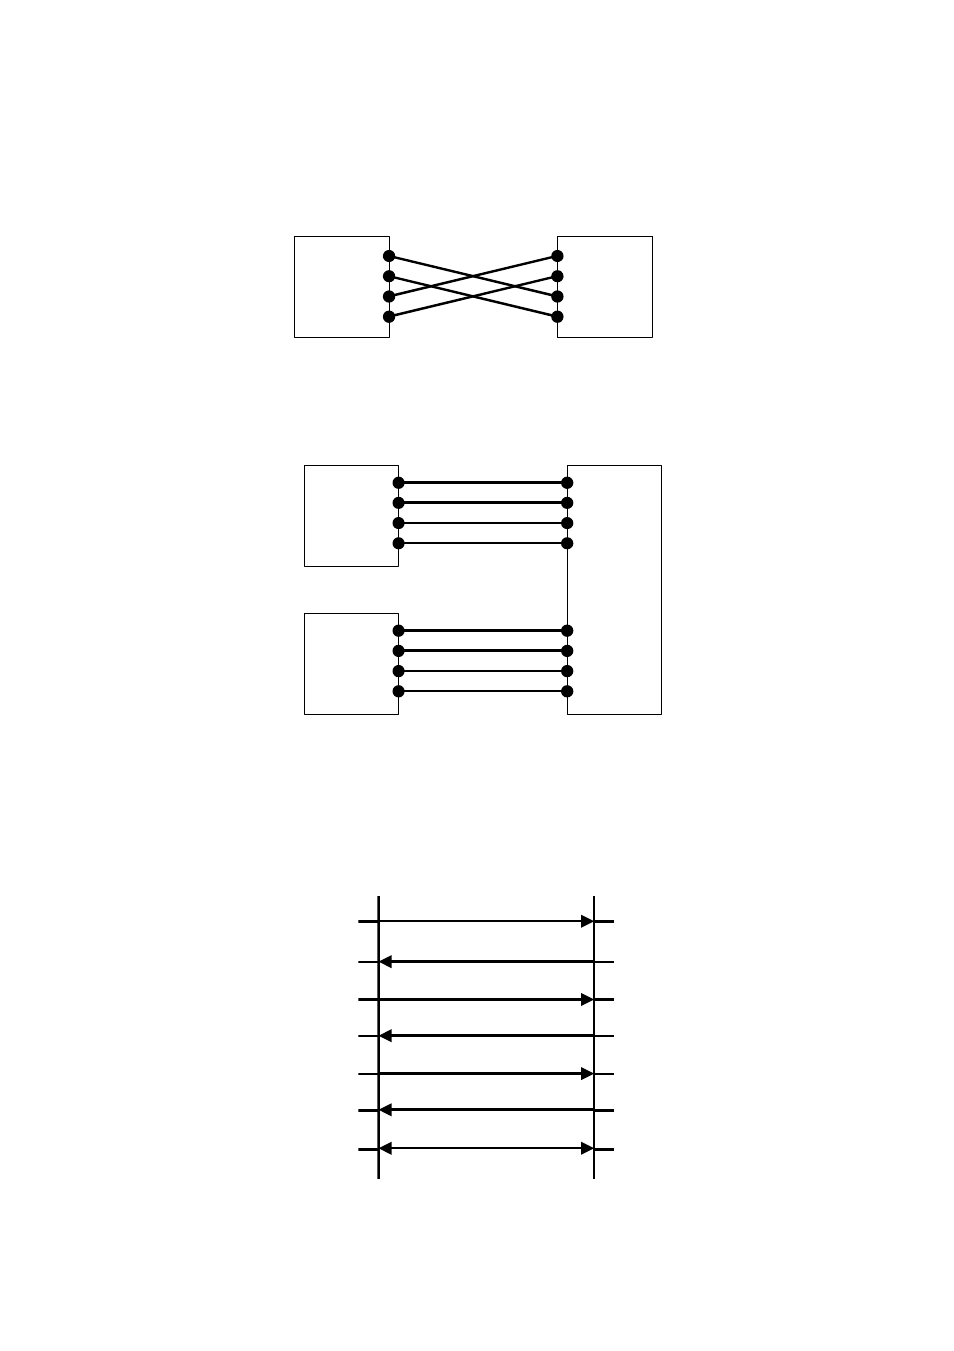 hight resolution of a 3 ethernet wiring diagram a 4 serial wiring diagram sena ls110 user manual page 60 66